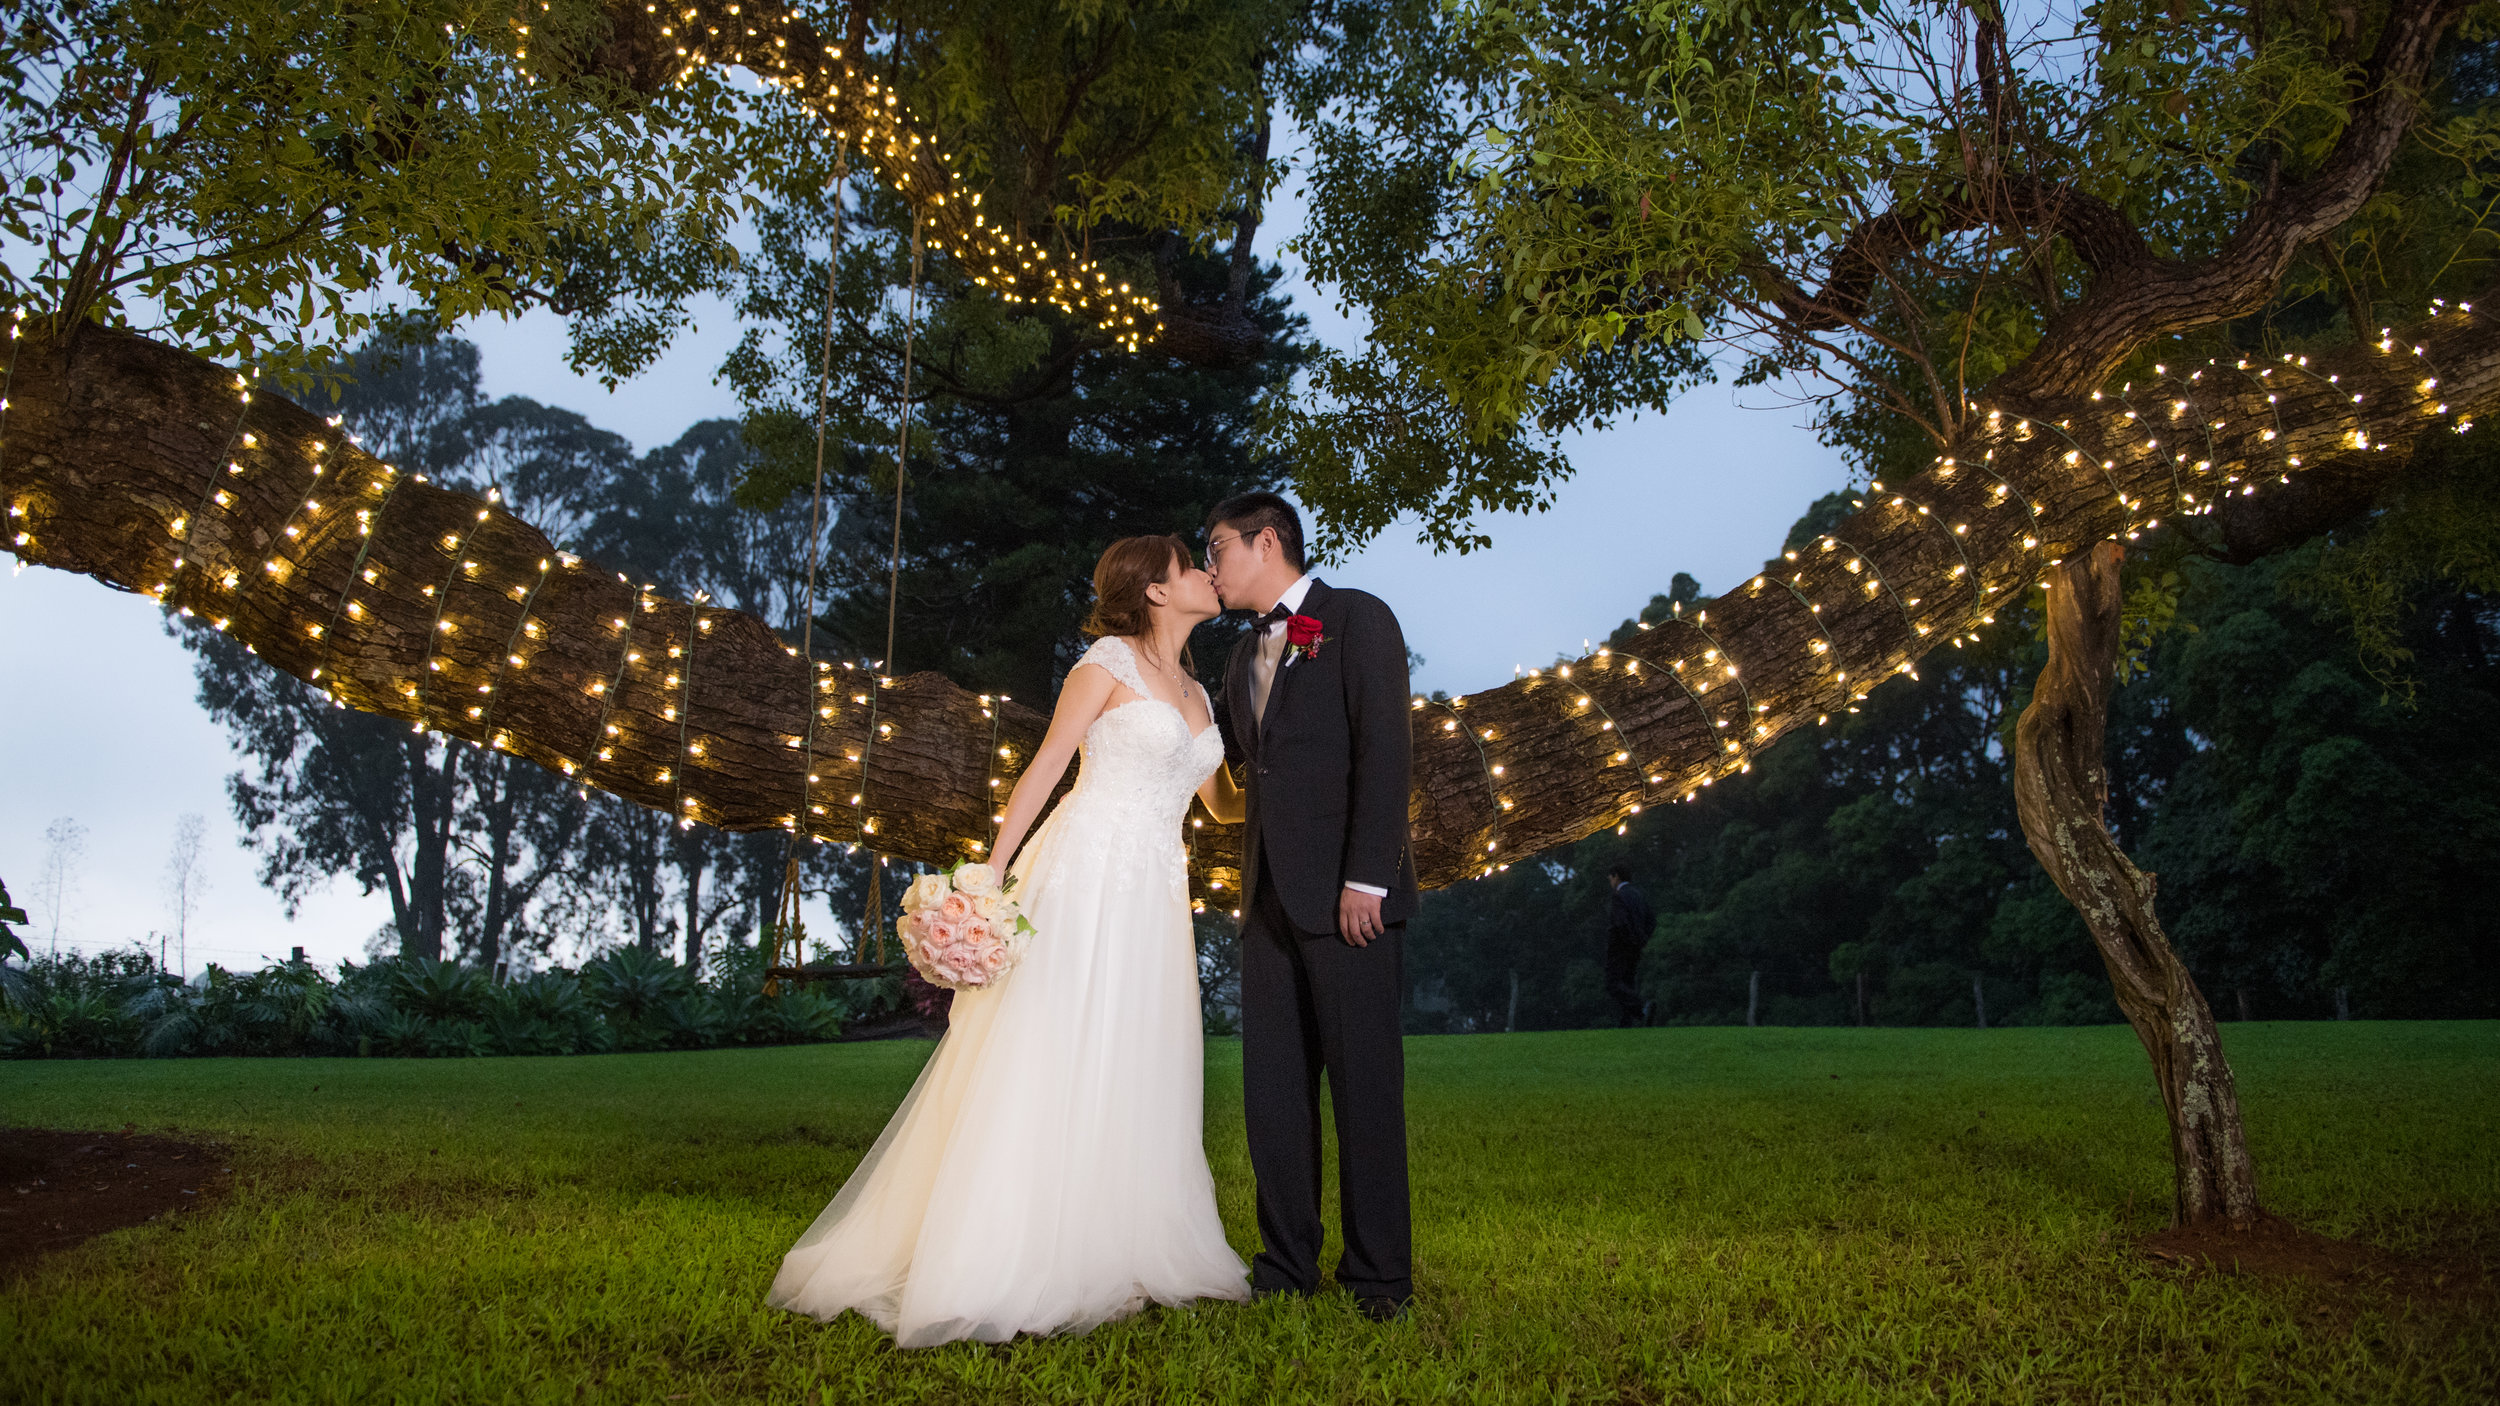 Intimate Countryside Wedding Manyi Bo Bliss Maui